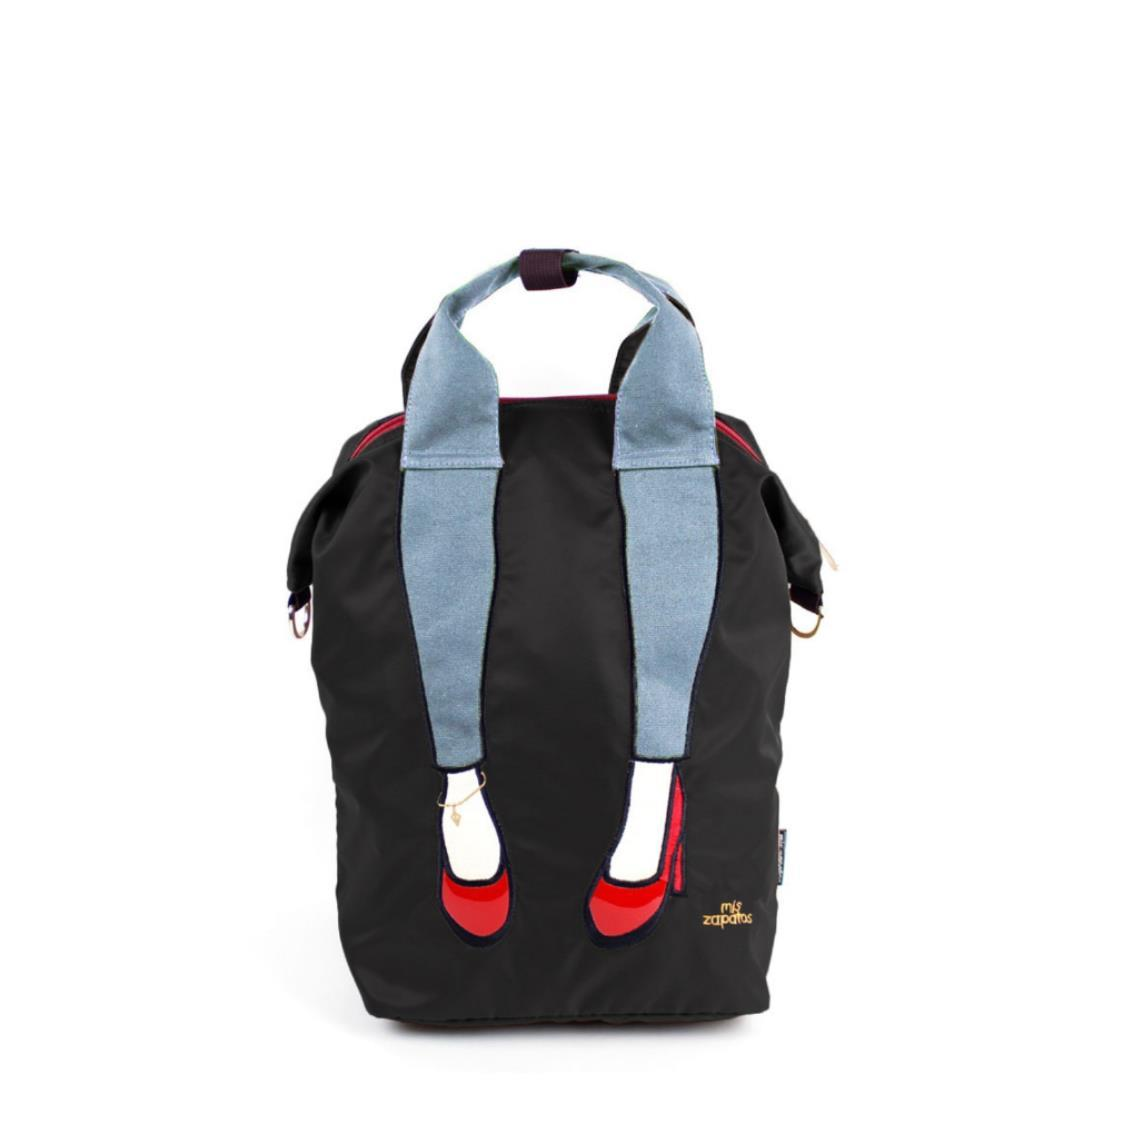 3-Way Use Jeans with High Heels Backpack Black